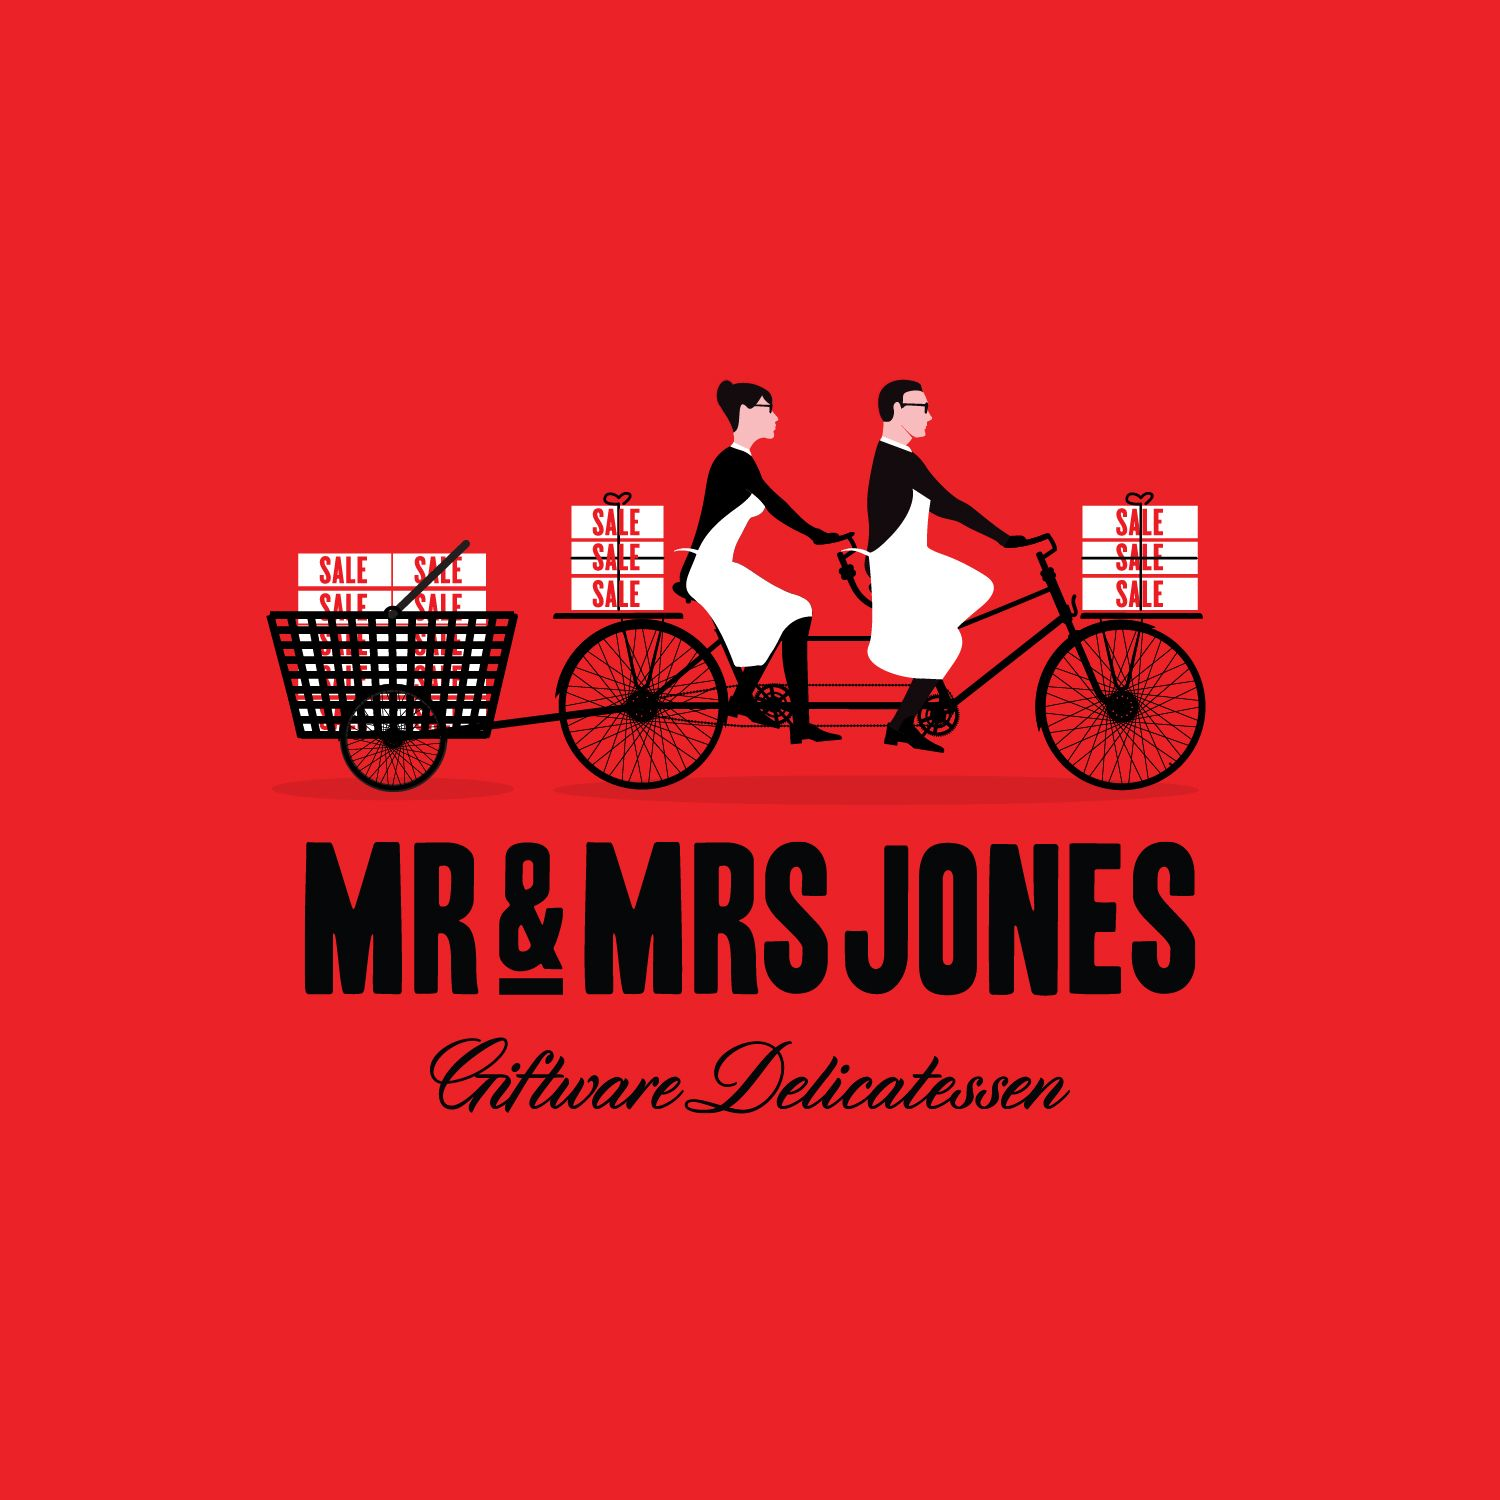 Mr & Mrs Jones